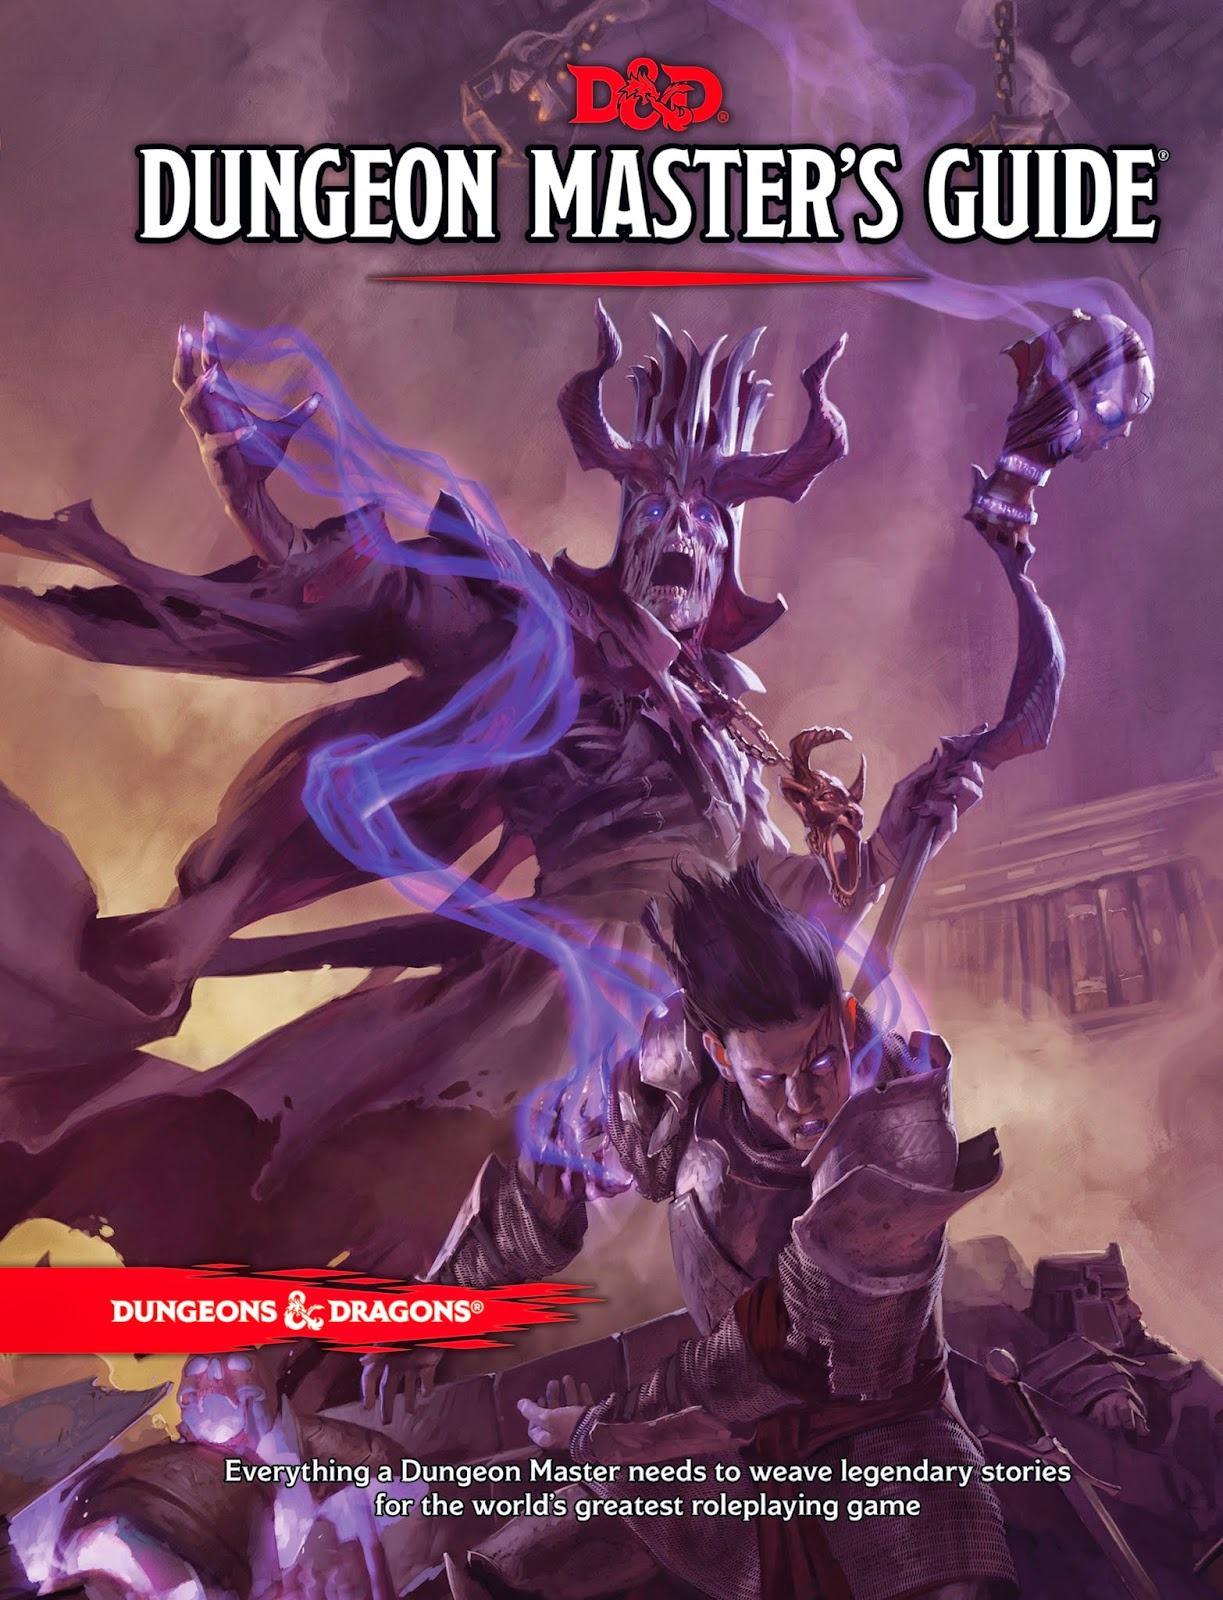 Cover of the 5th edition Dungeons & Dragons Dungeon Master's Guide